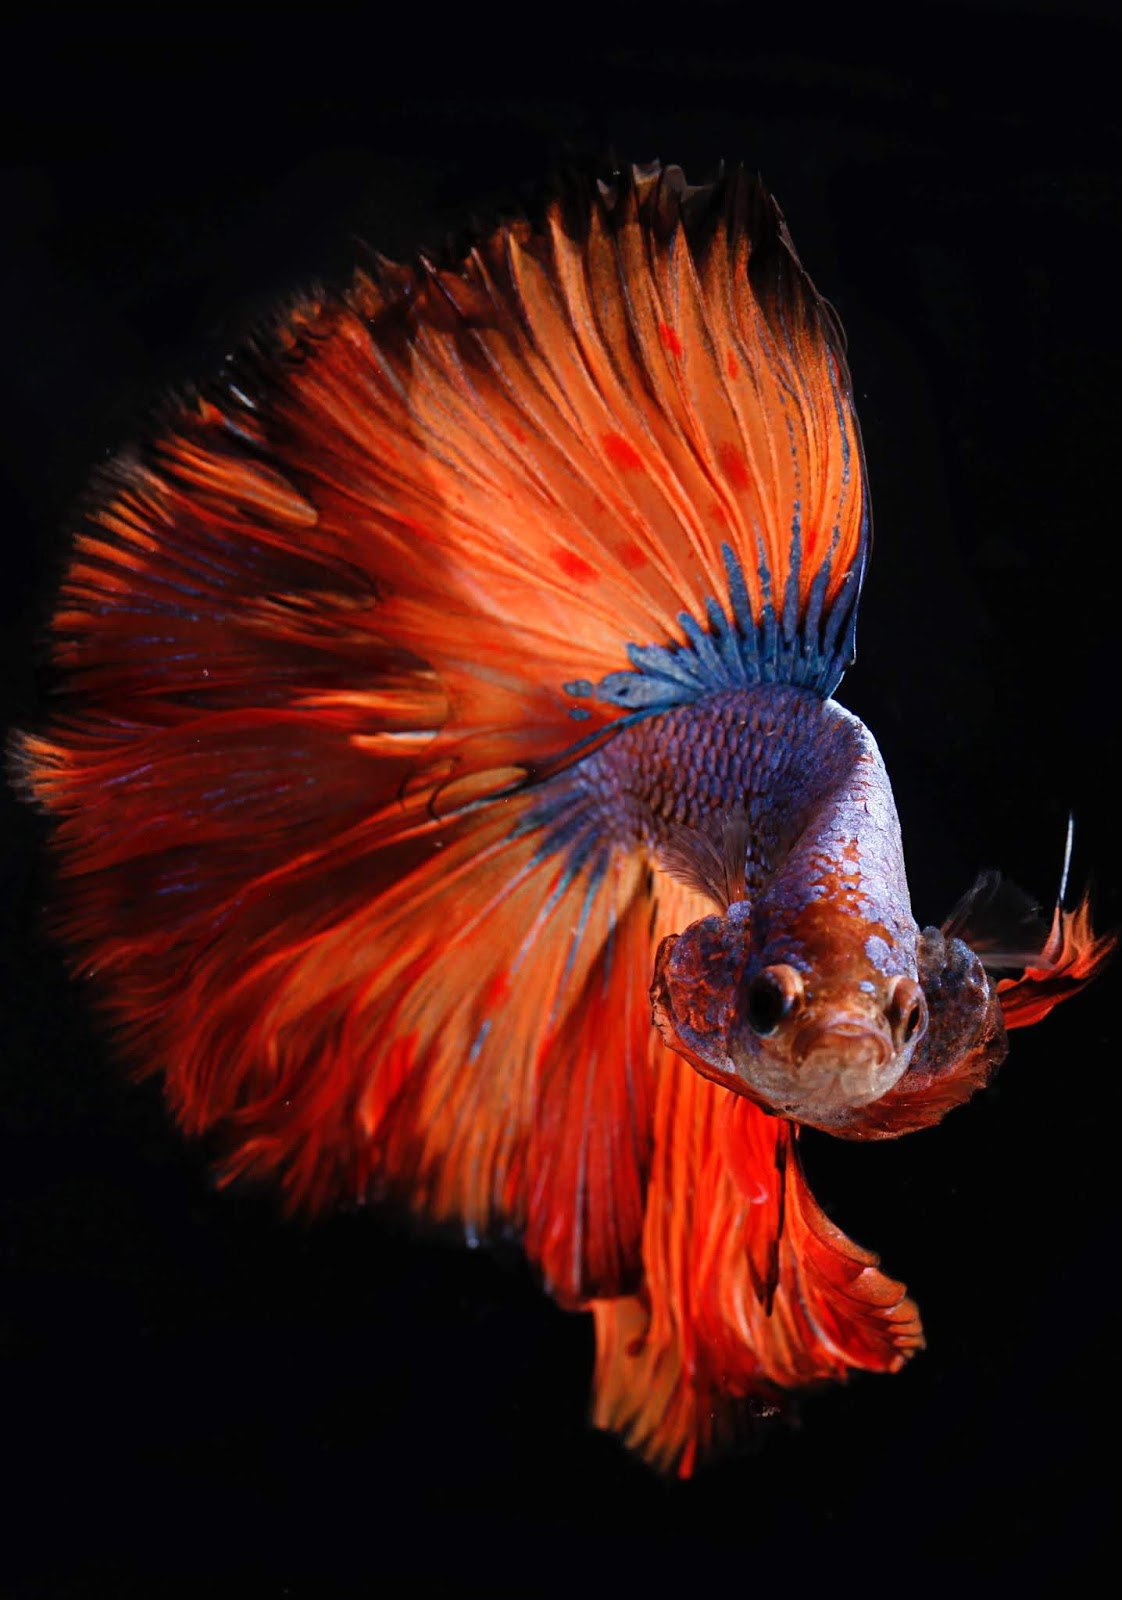 Picture of a siamese fighting fish.